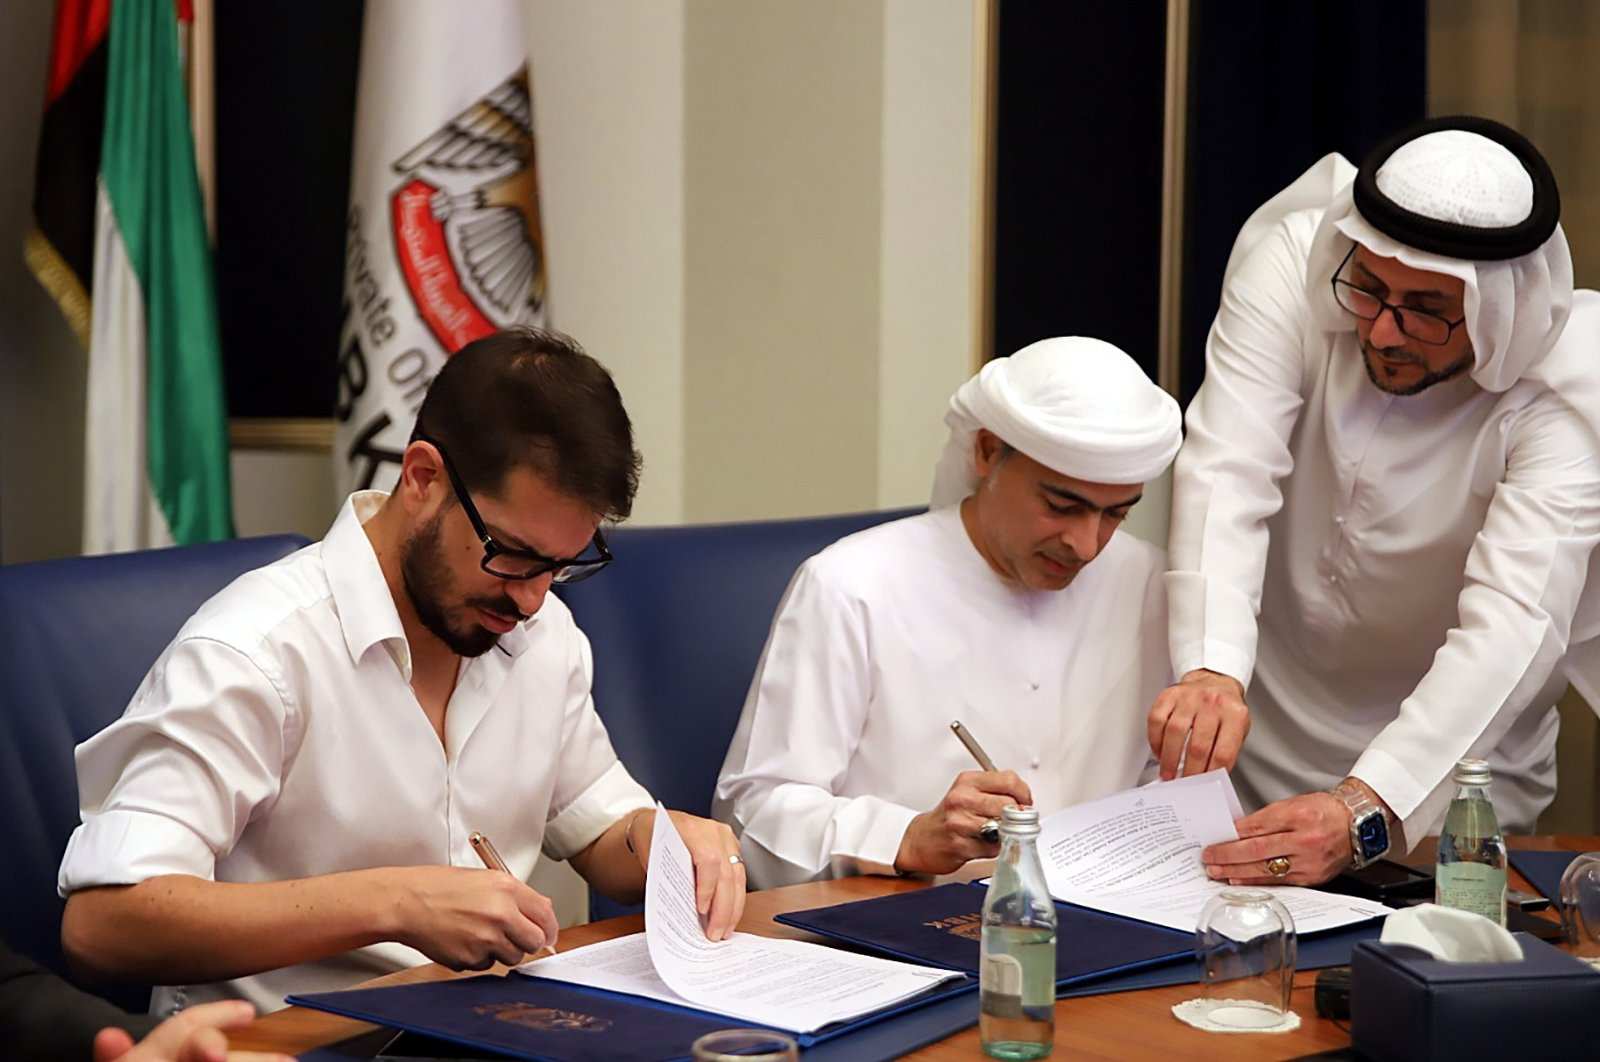 A handout photo made available by Beitar Jerusalem Club shows Moshe Hogeg (L), soccer club owner of Beitar Jerusalem, and Sheikh Hamad bin Khalifa Al Nahyan (R) during the signing of a partnership agreement between the Beitar Jerusalem soccer club and Sheikh Hamad bin Khalifa Al Nahyan, in Dubai, 08 December 2020. (EPA Photo)